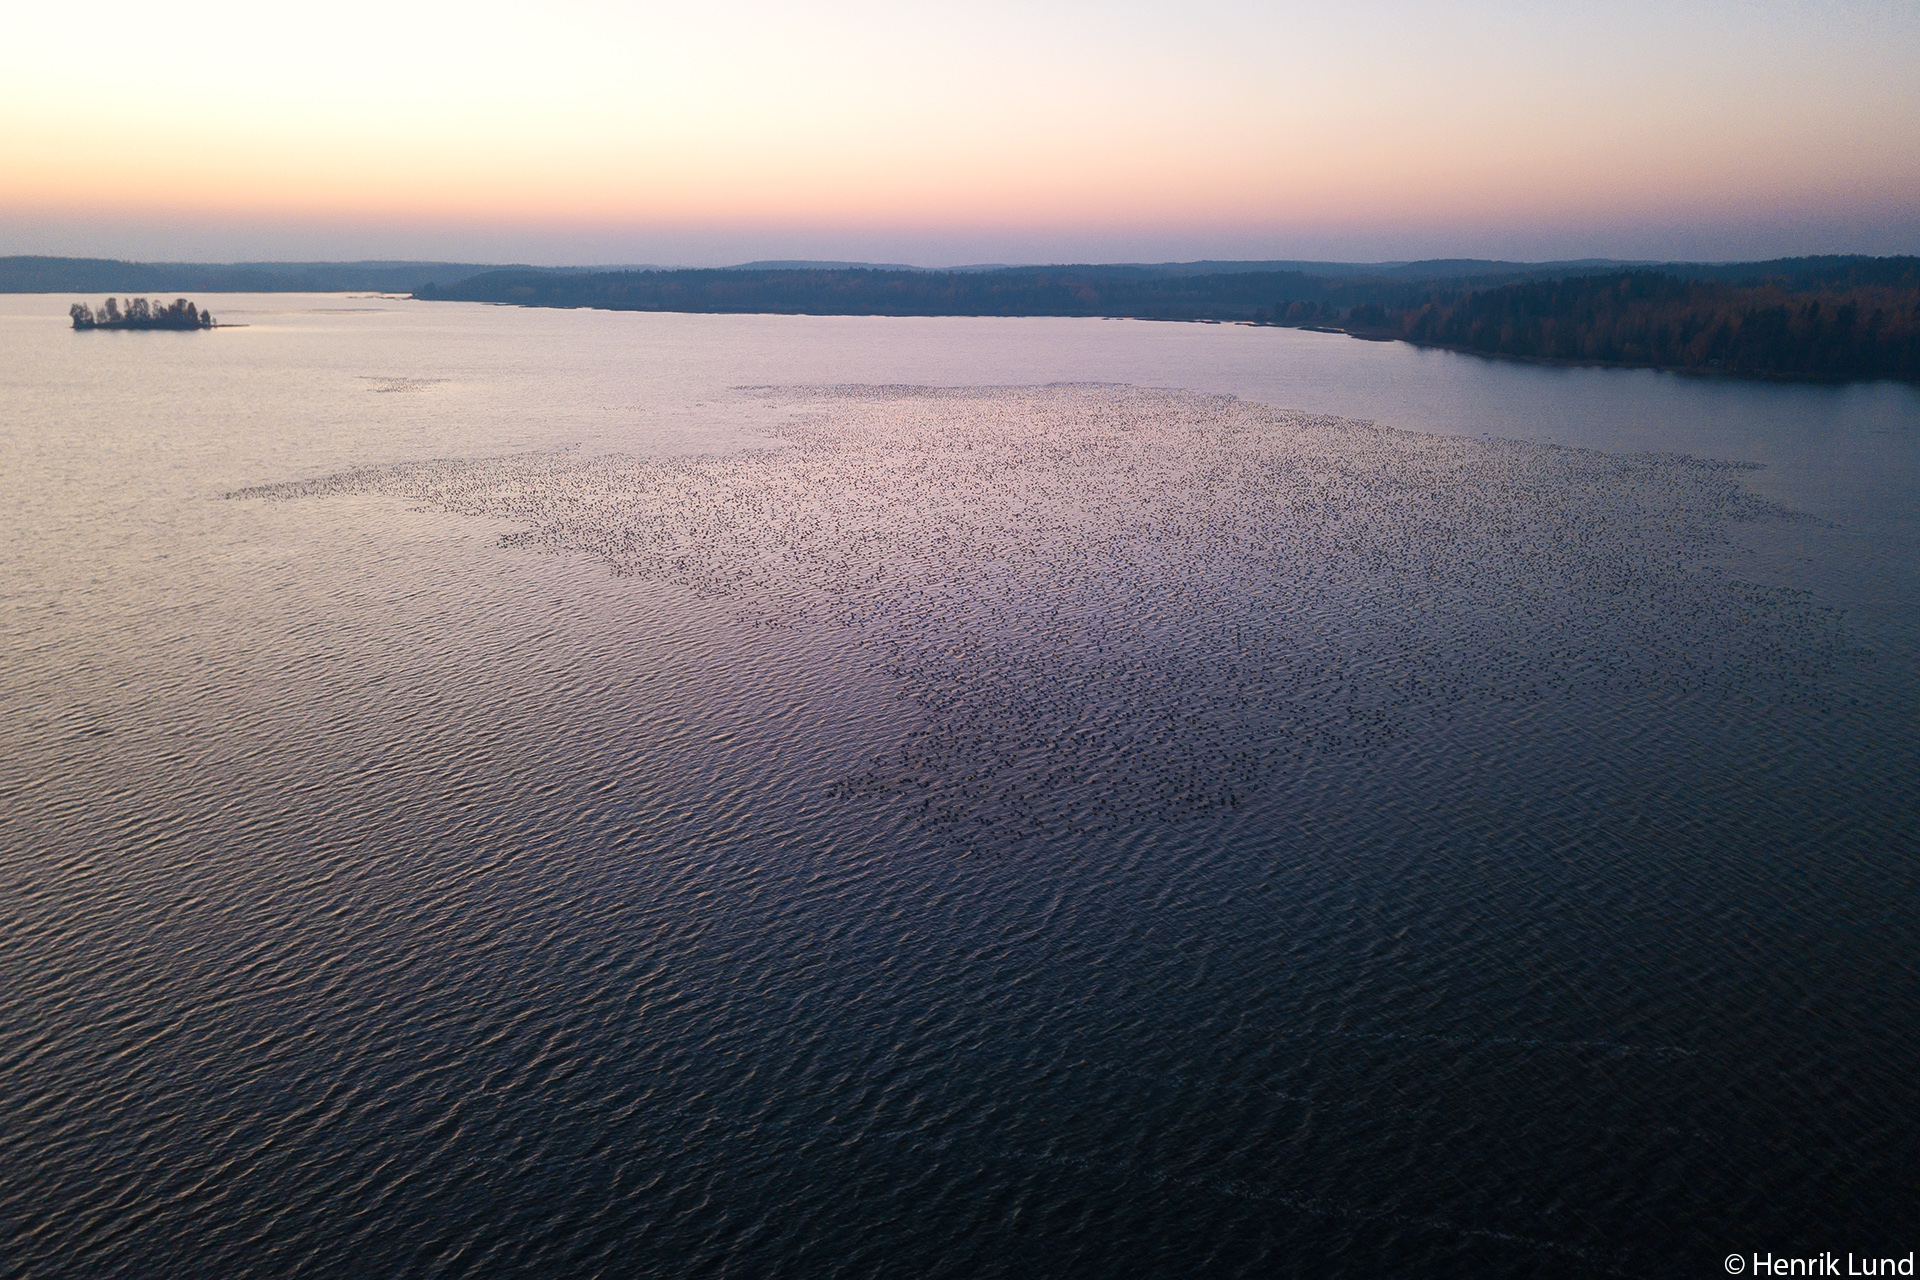 Aerial view over the big flock of geese on lake Lapinjärvi. Finland. October 2018.